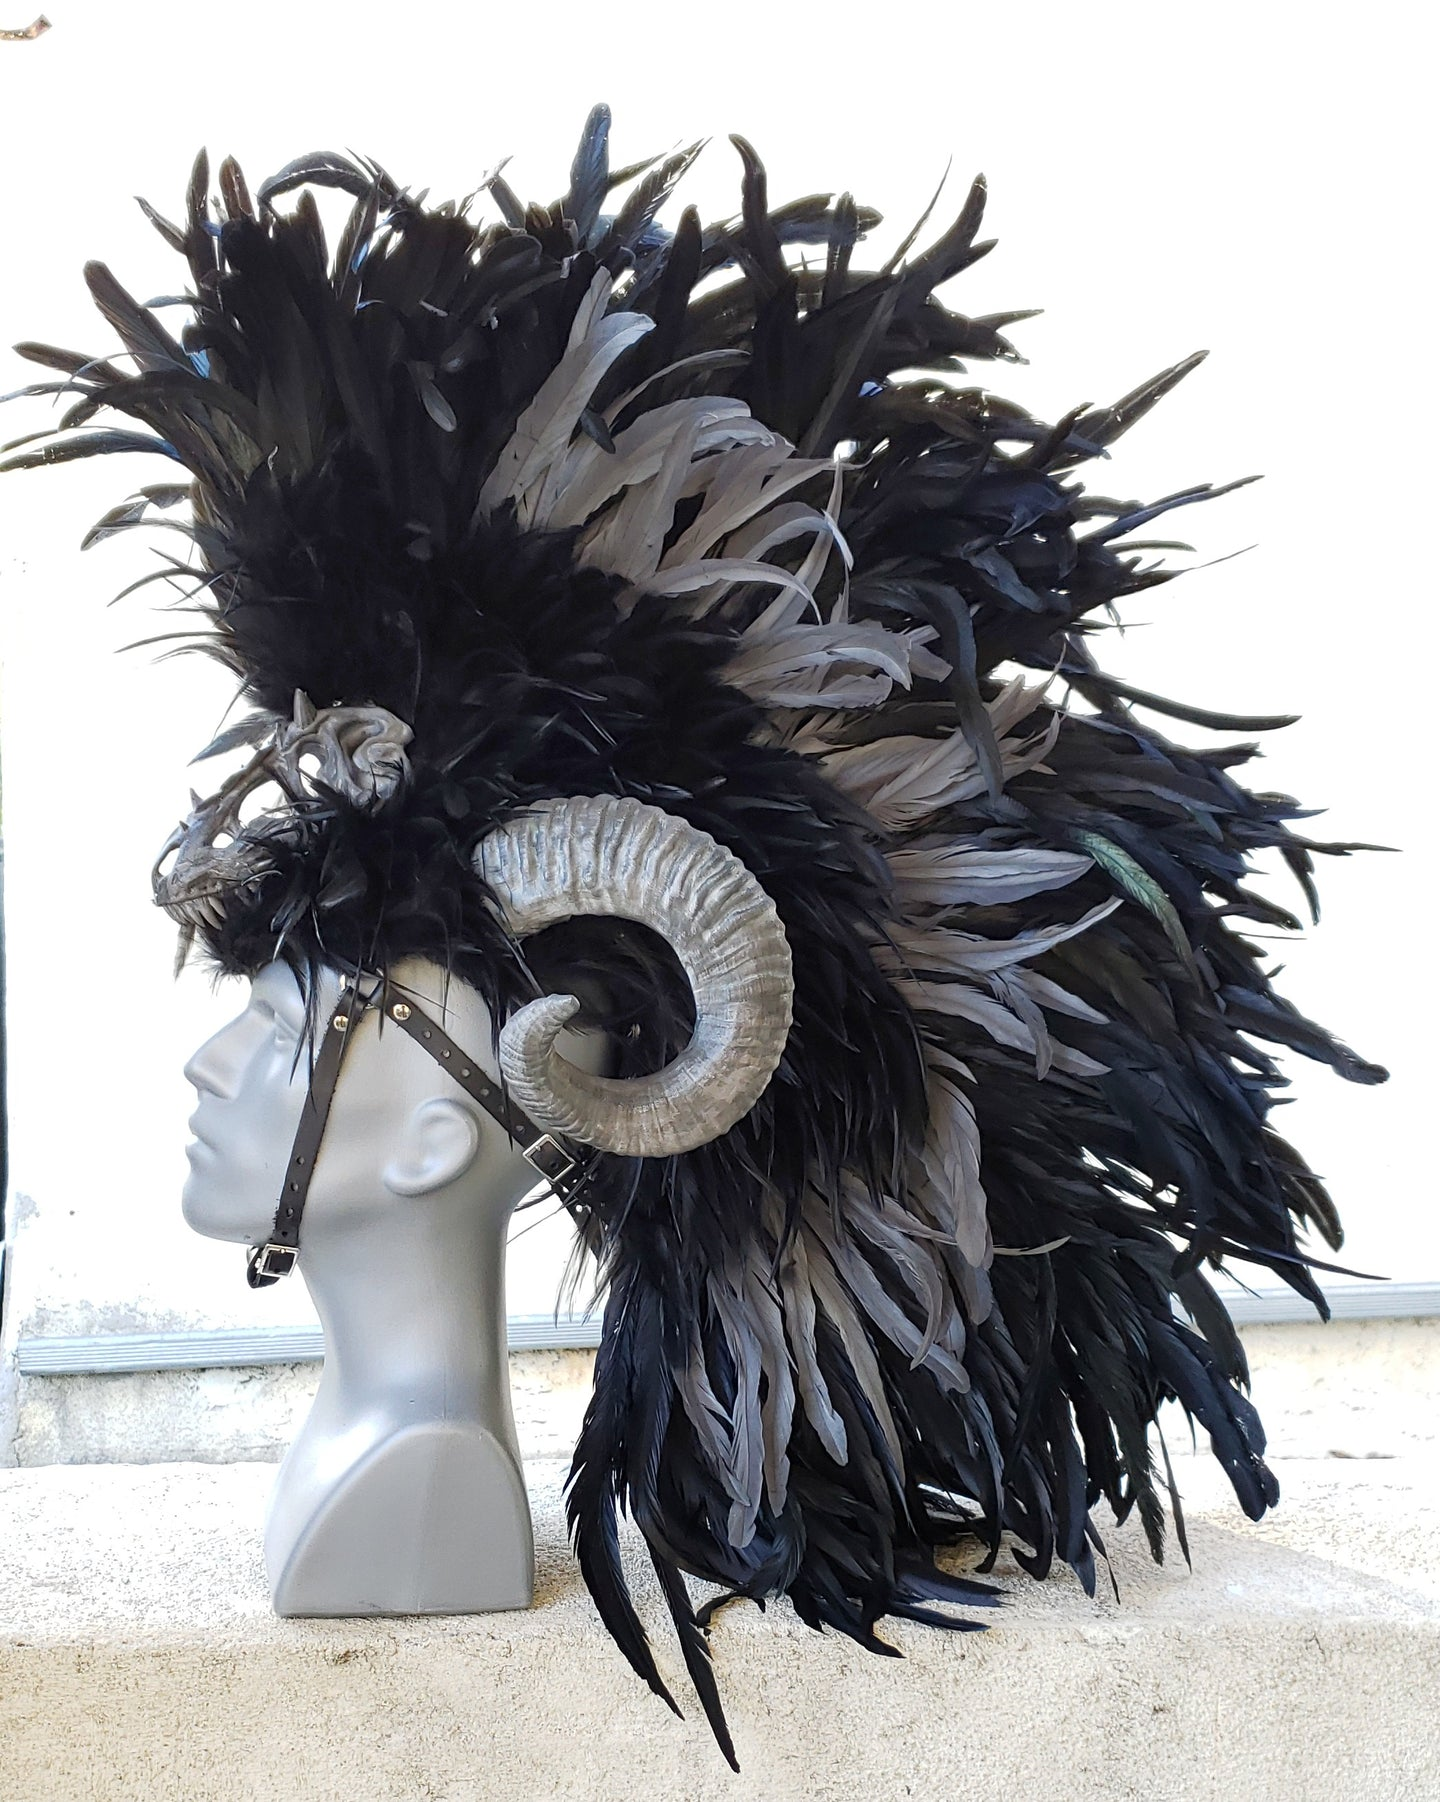 Dragon Slayer Headdress- Black feather headdress with ram horns and dragon skull